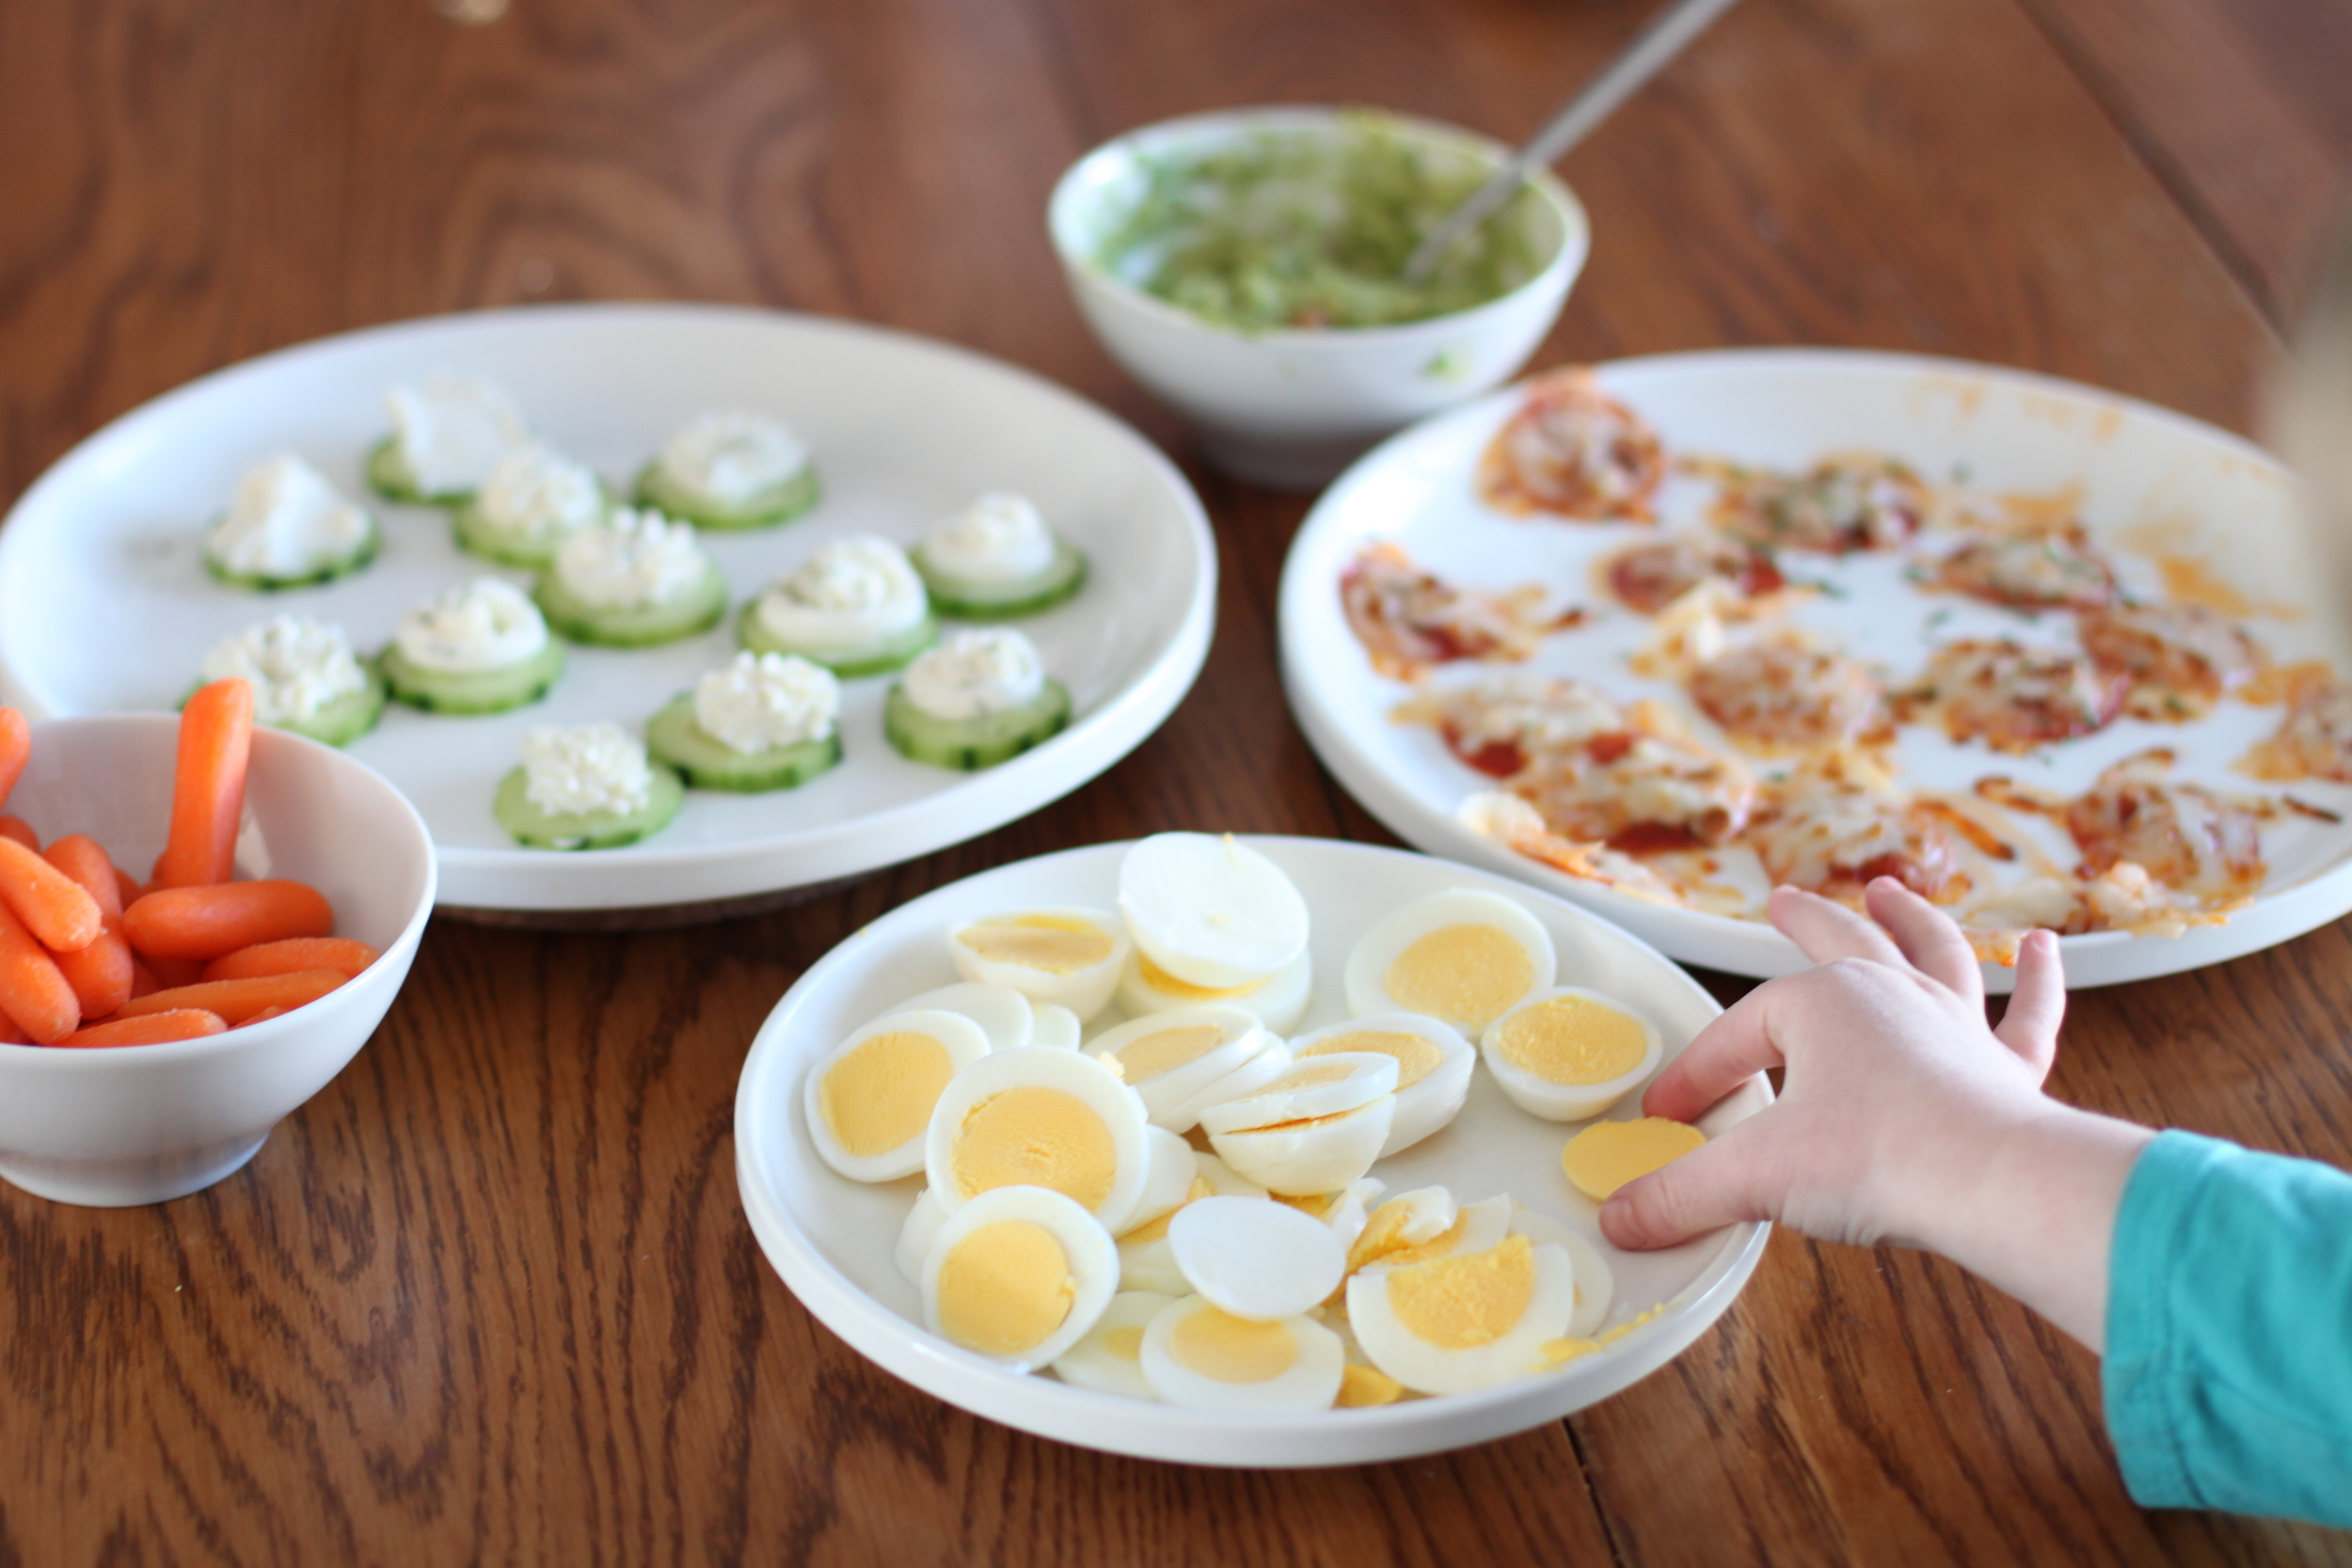 low carb/paleo kids: creating a (lunch) tapas party